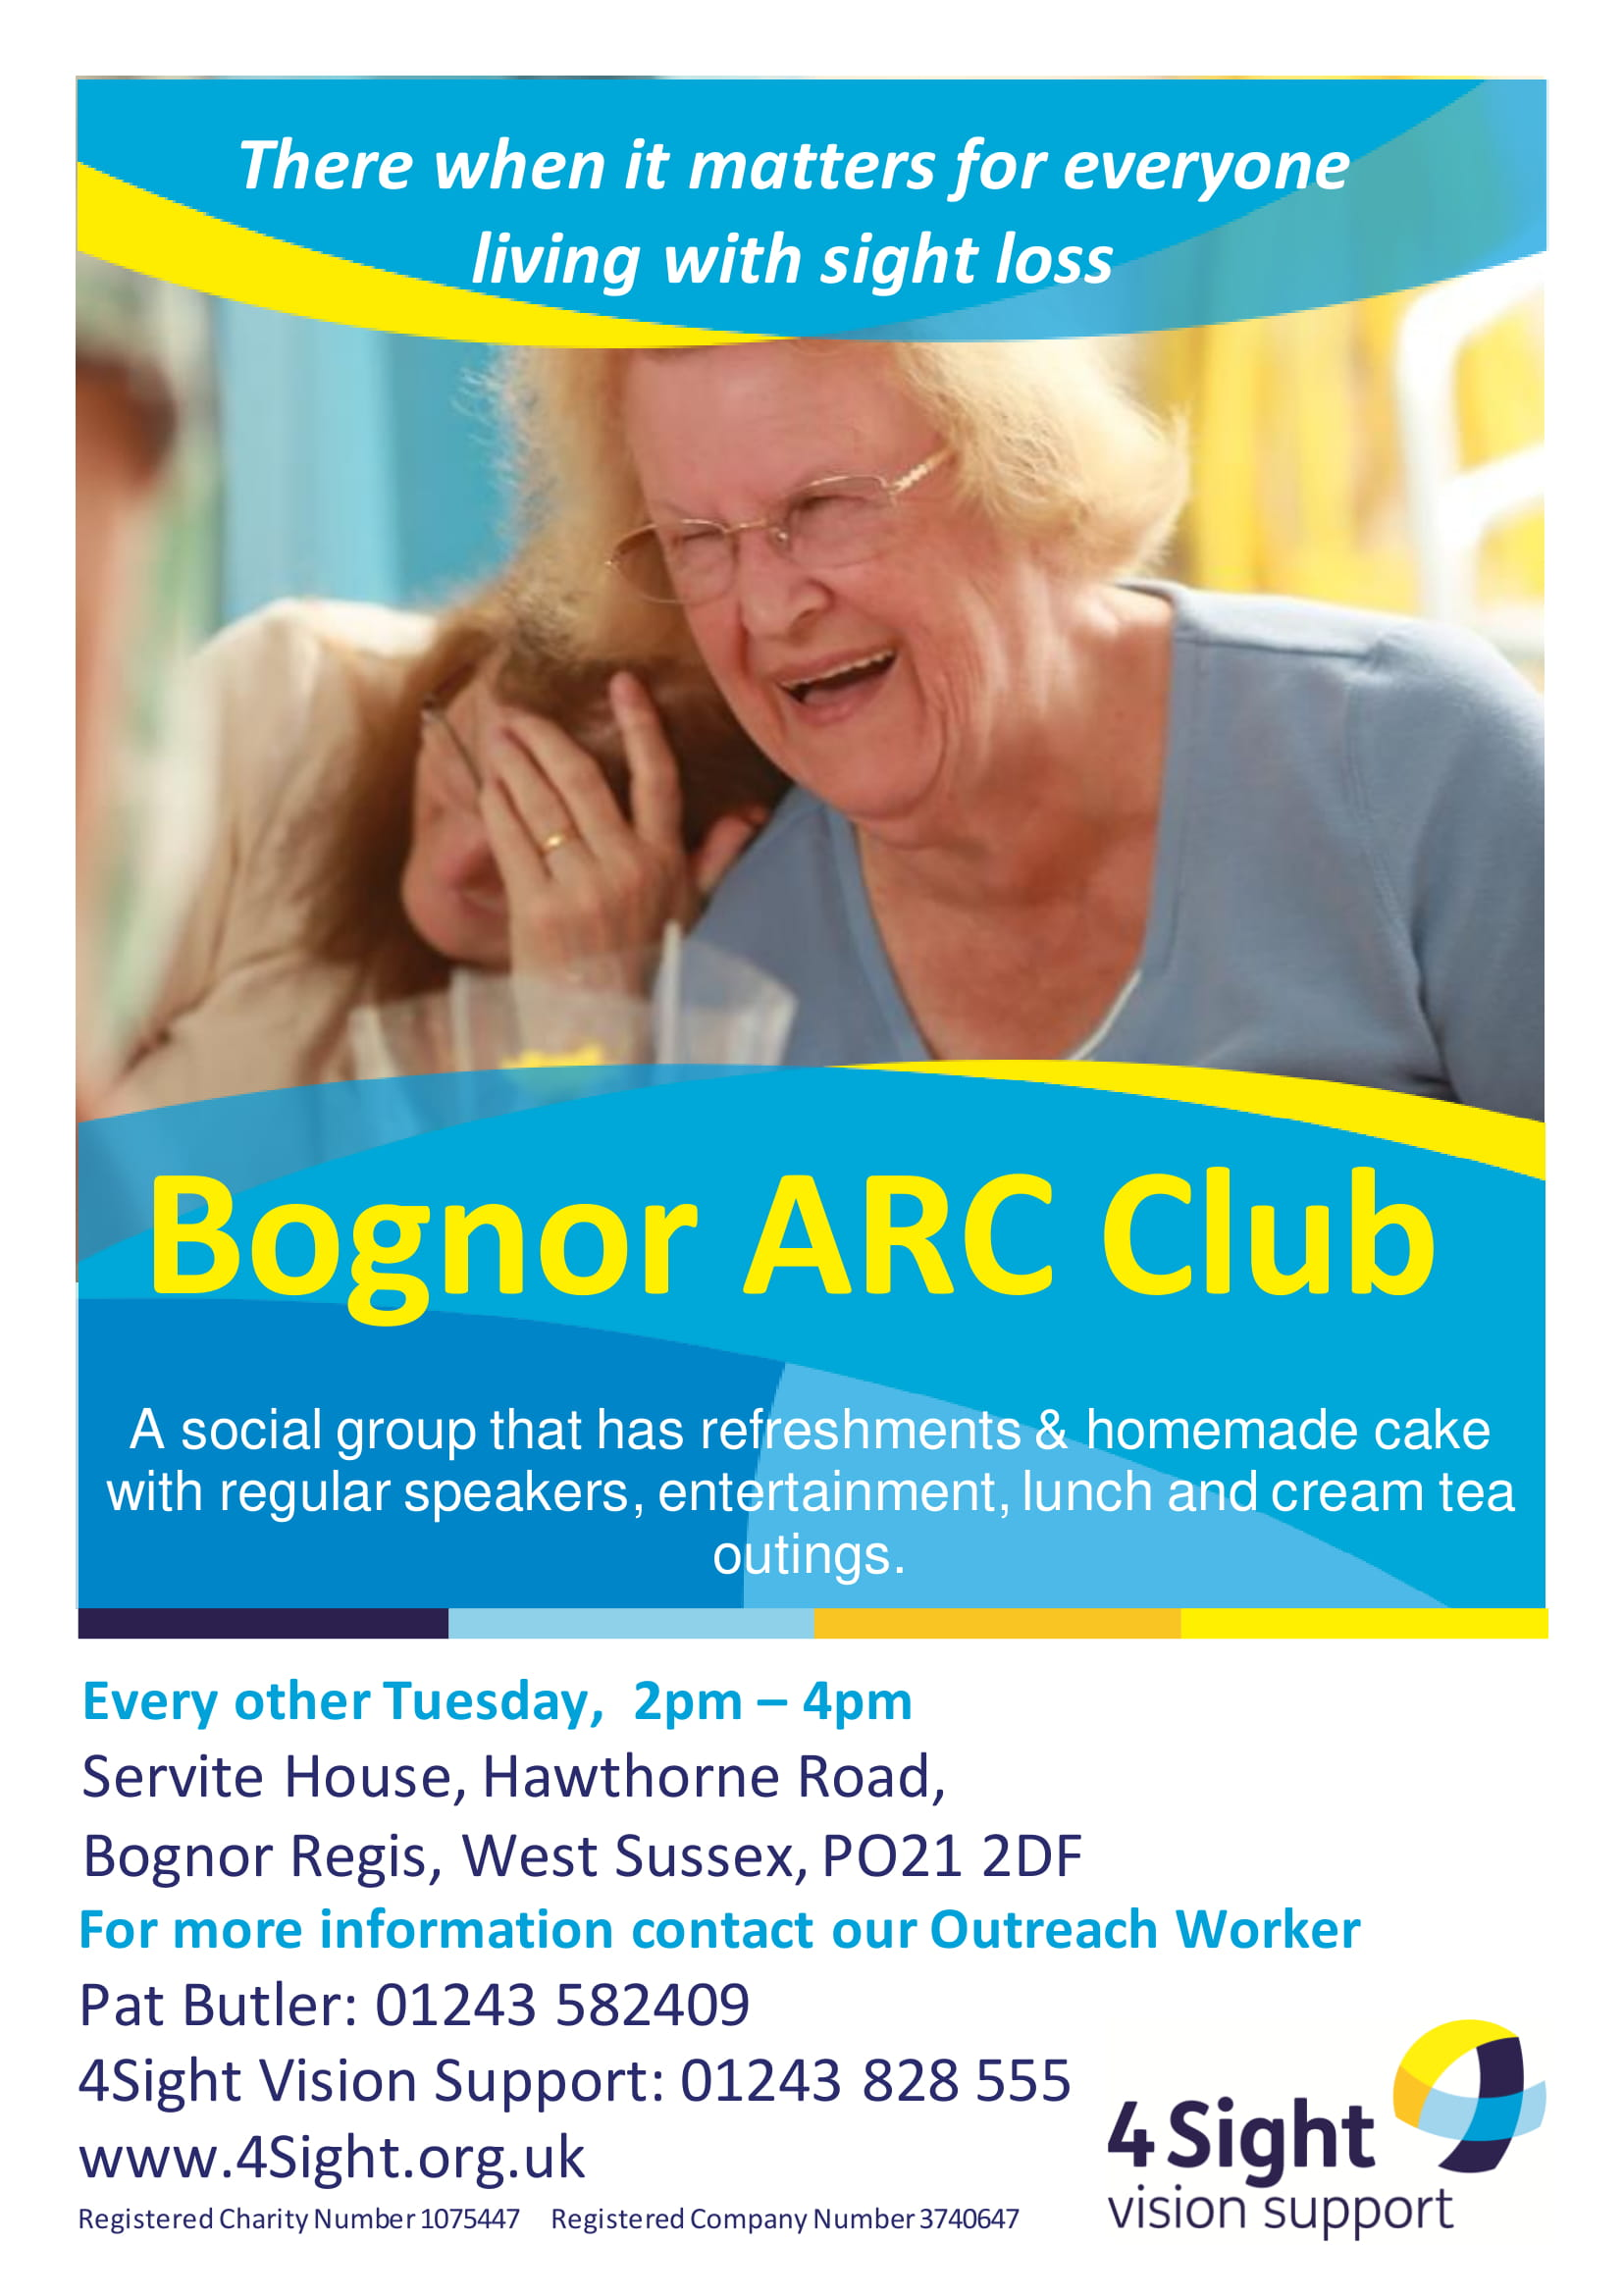 Bognor ARC Club-1